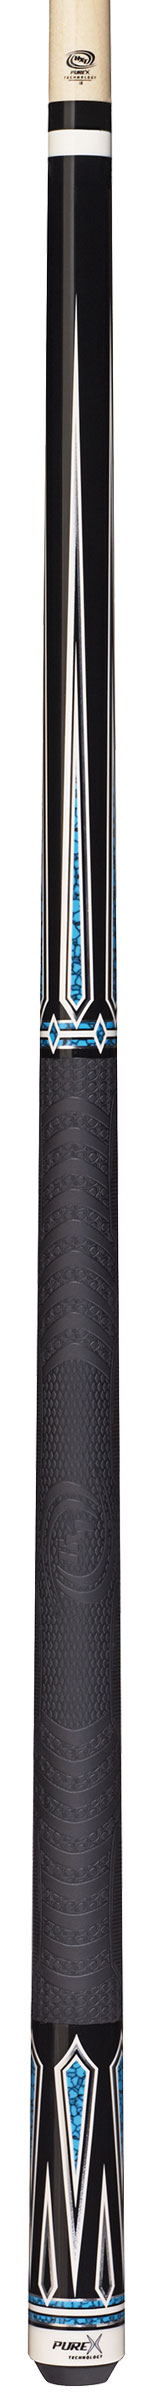 Pure X Technology Hxt62 Pool Cue Technolgy Pool Cues Pool Cues Cue Stick Pure Products